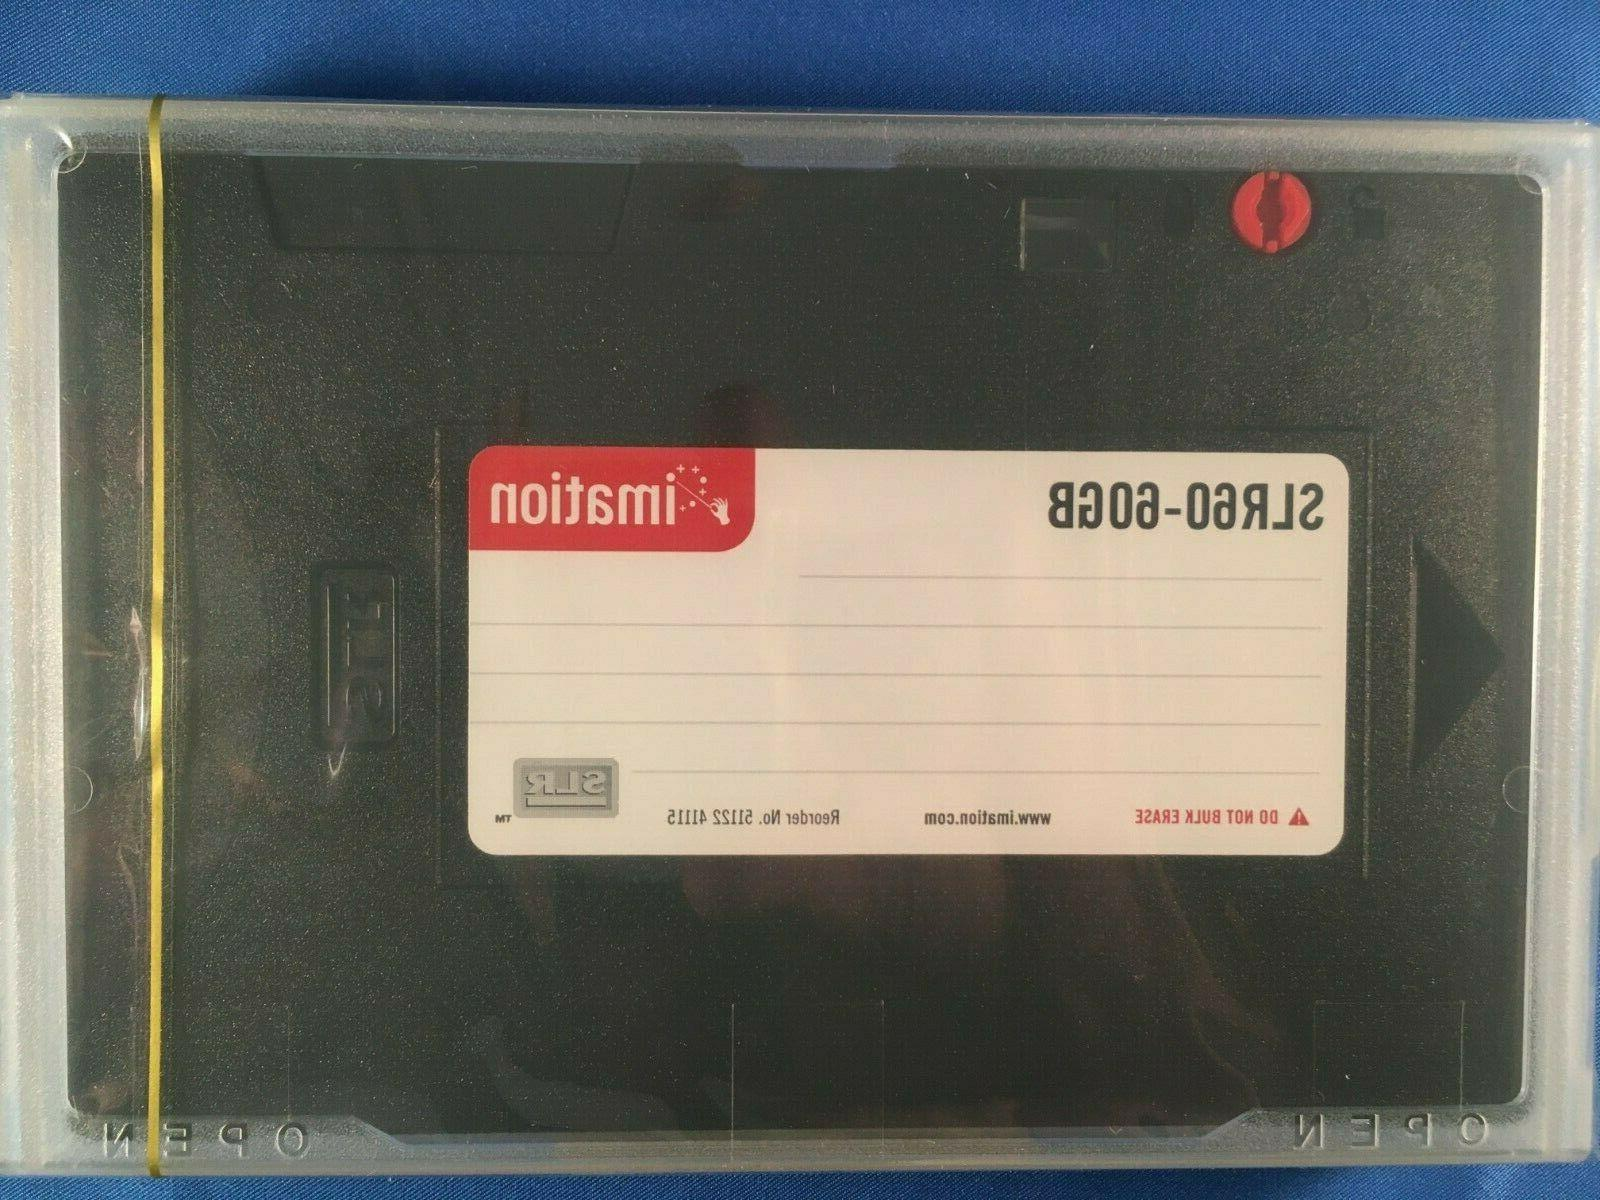 slr60 data cartridge